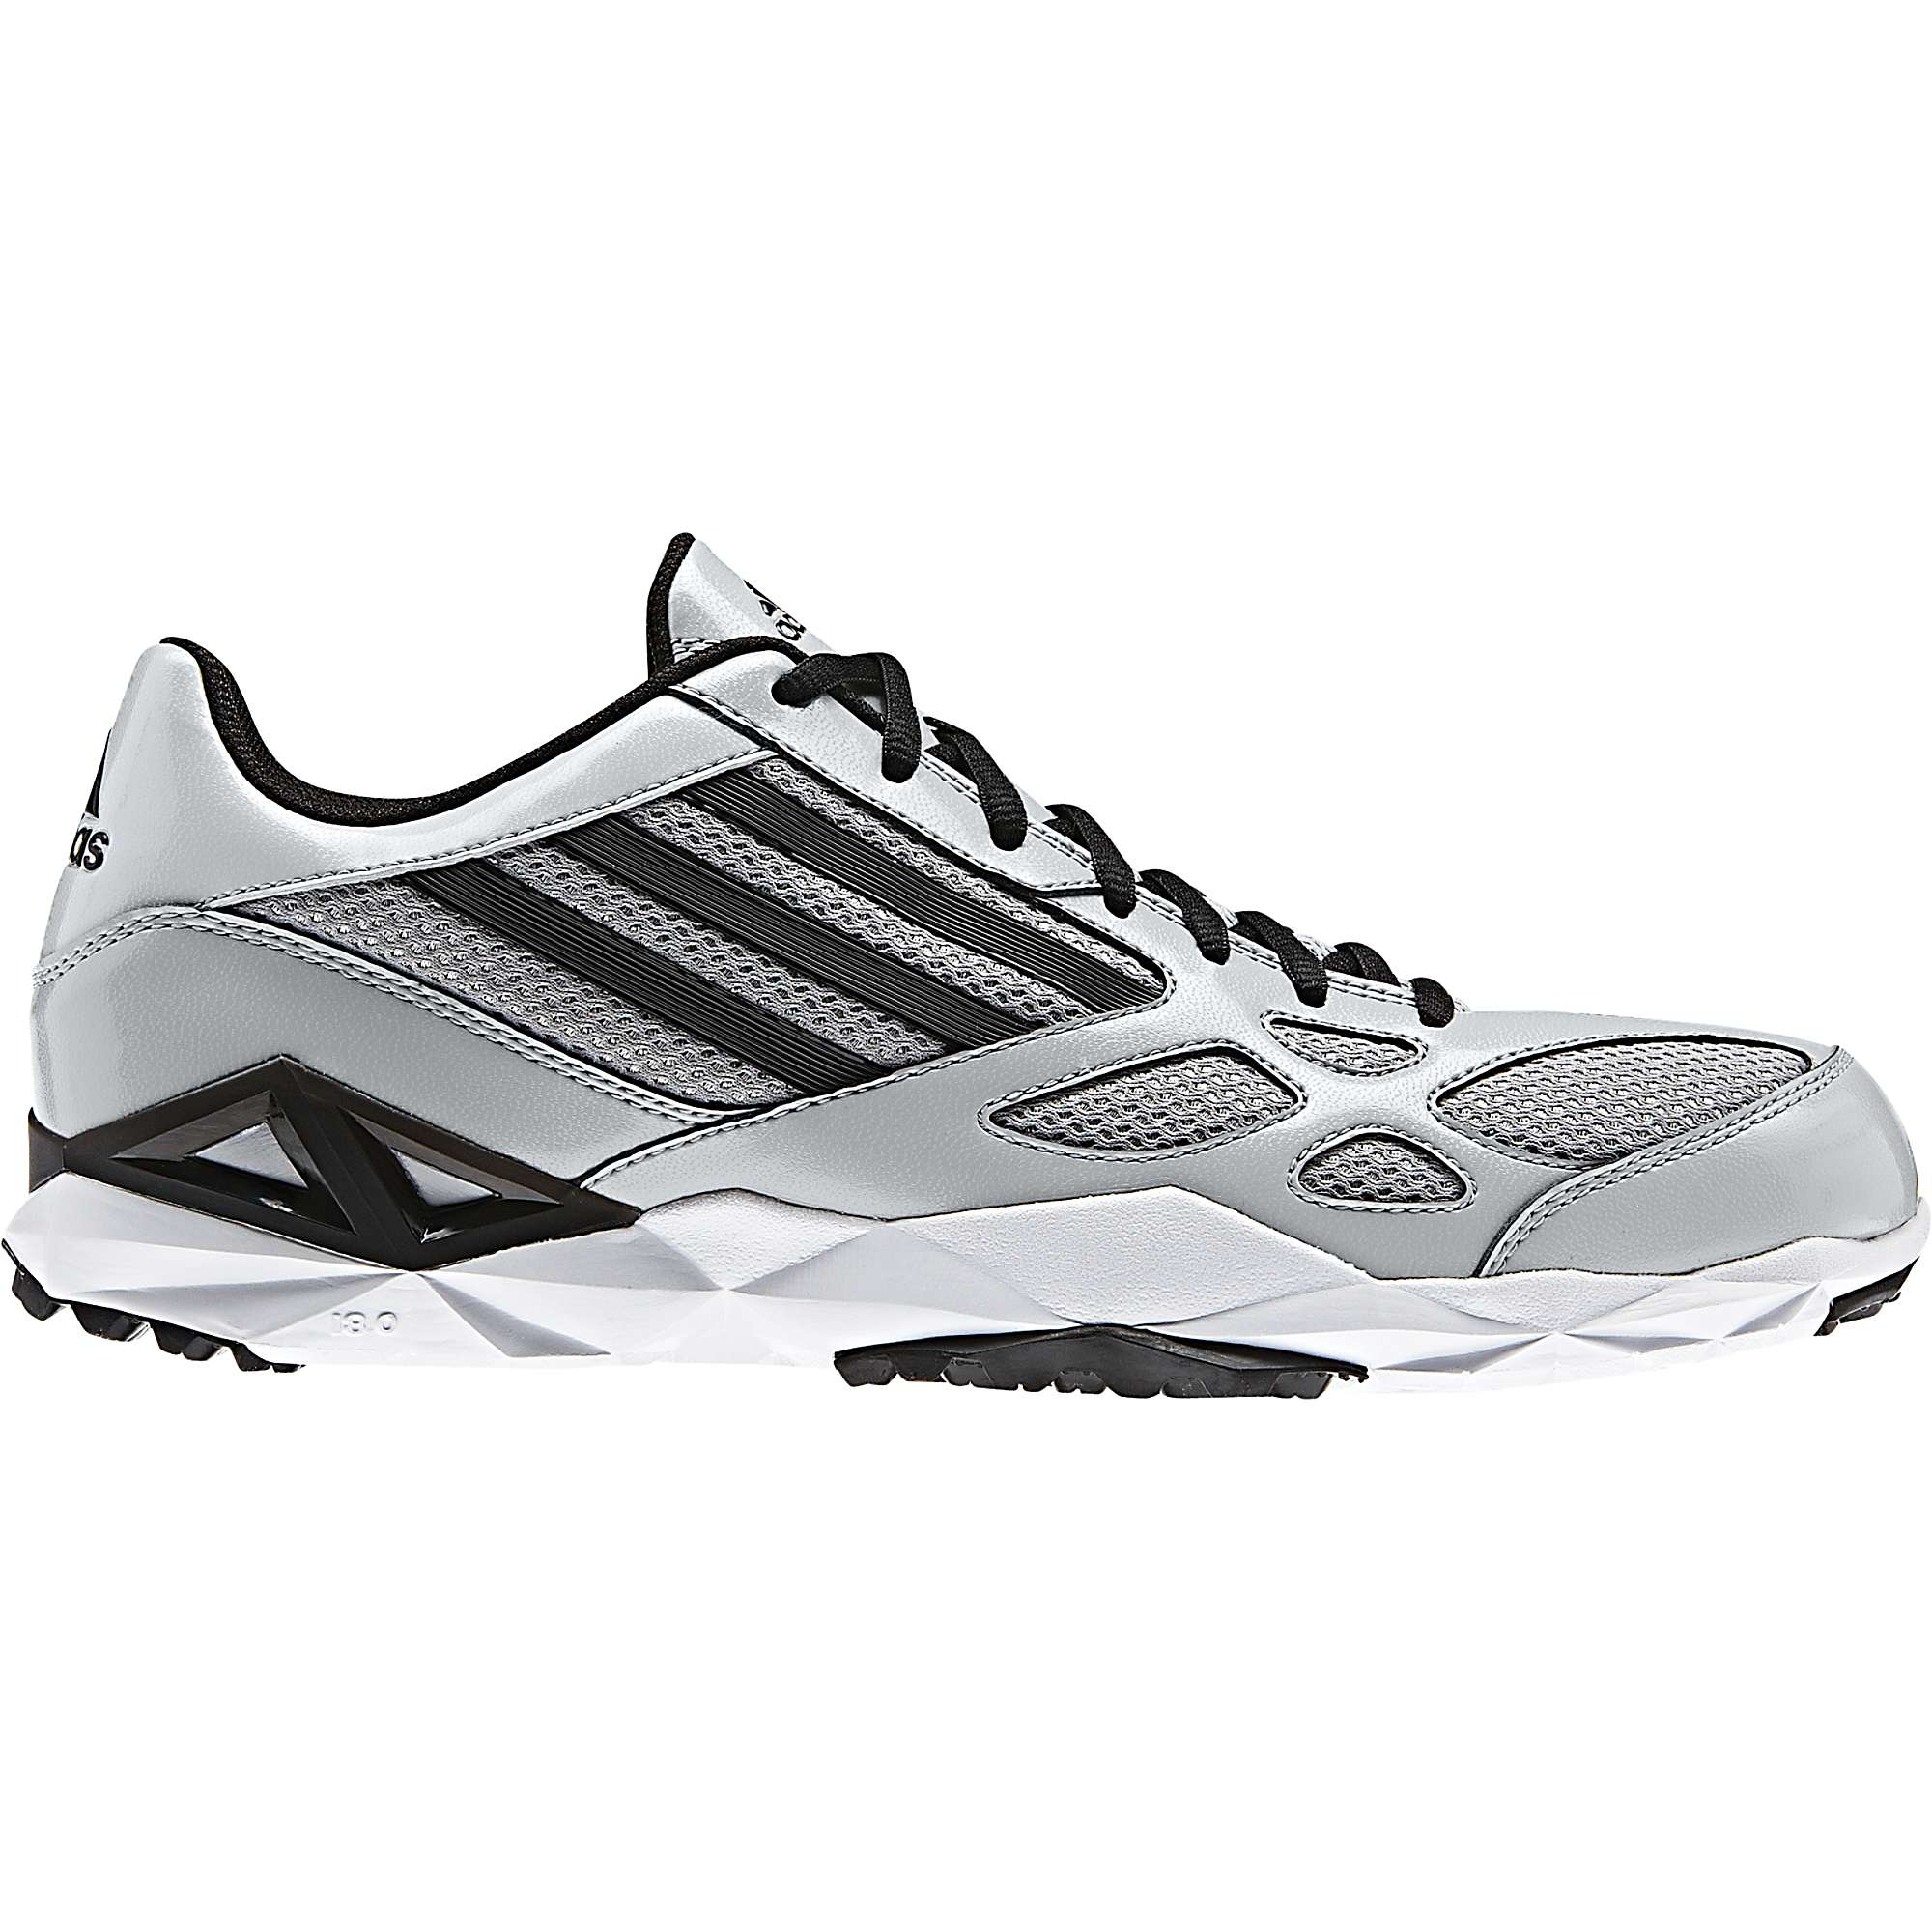 Cross Training Shoes Used For Running